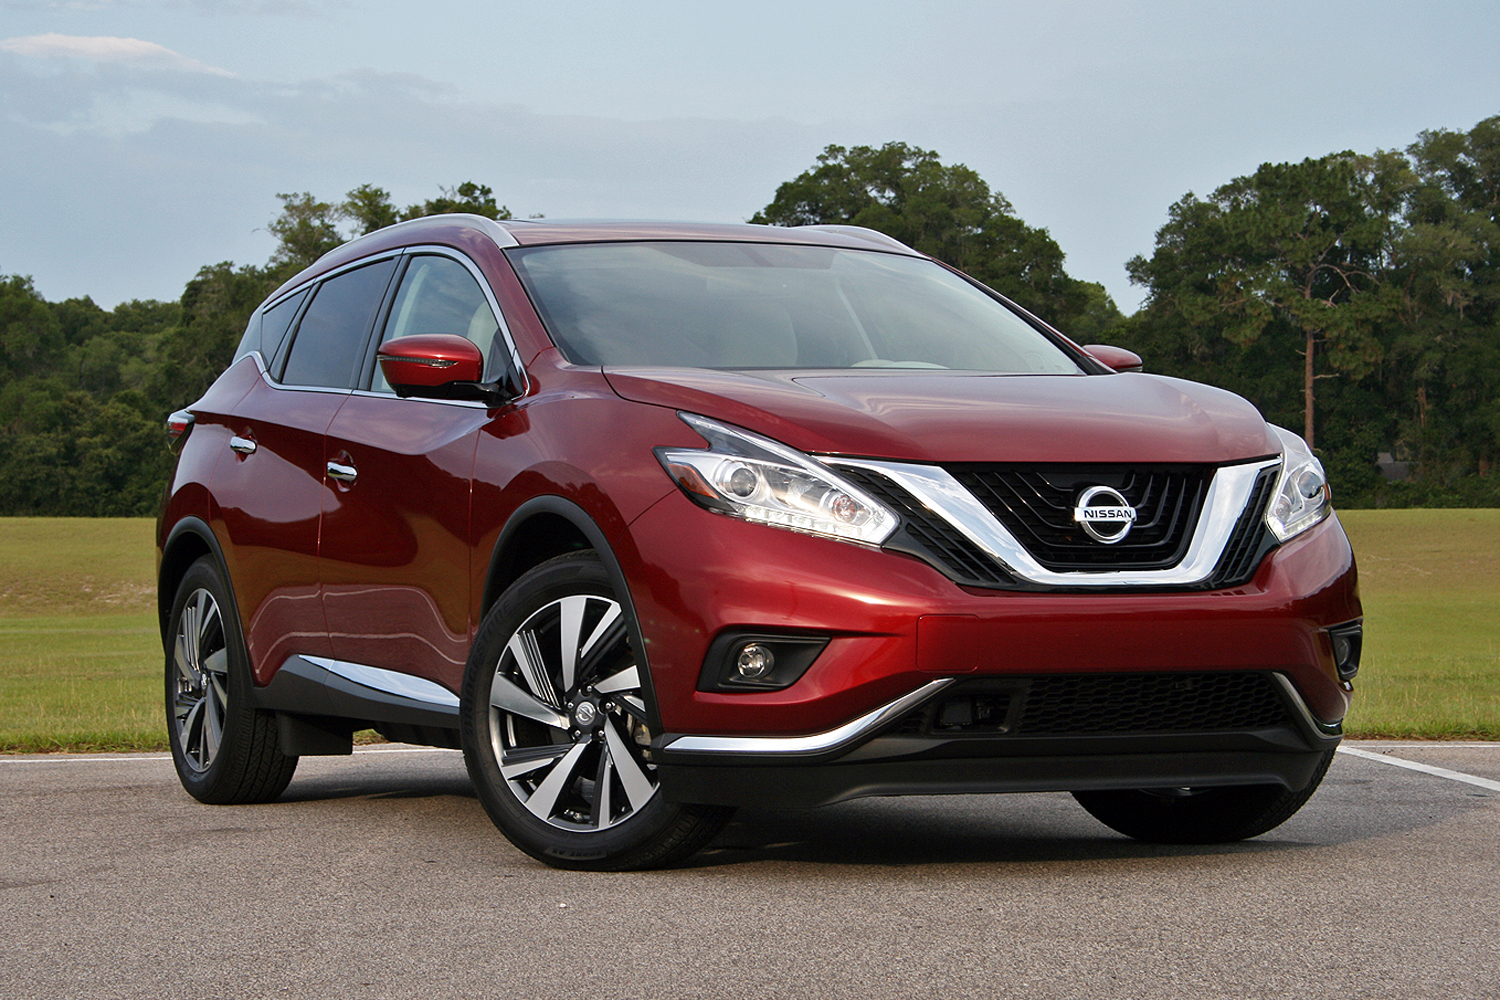 2016 nissan murano driven review top speed. Black Bedroom Furniture Sets. Home Design Ideas